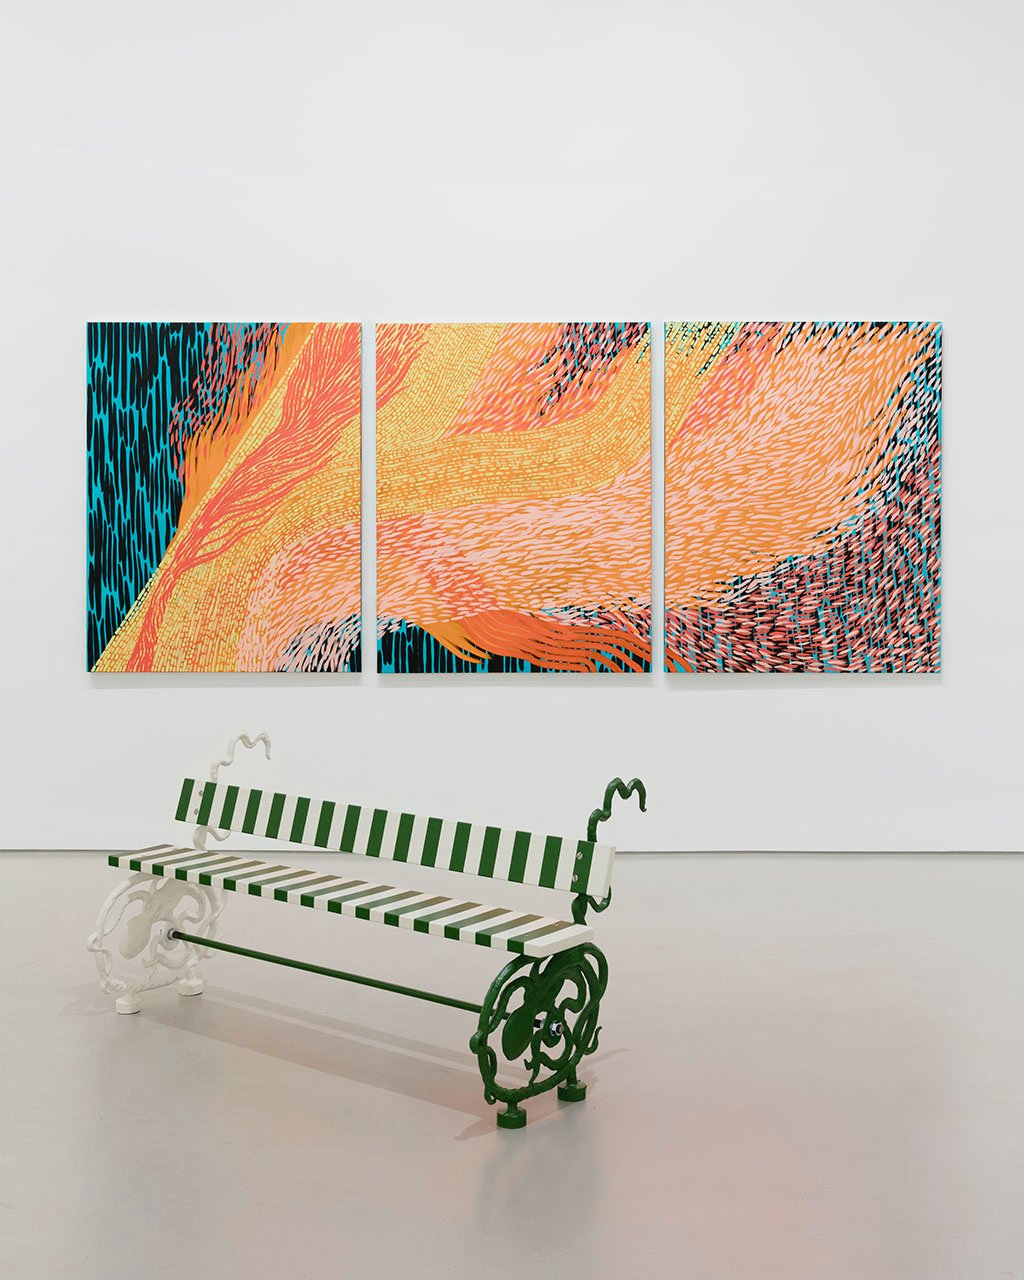 Galerie Max Hetzler FIAC at the gallery 4